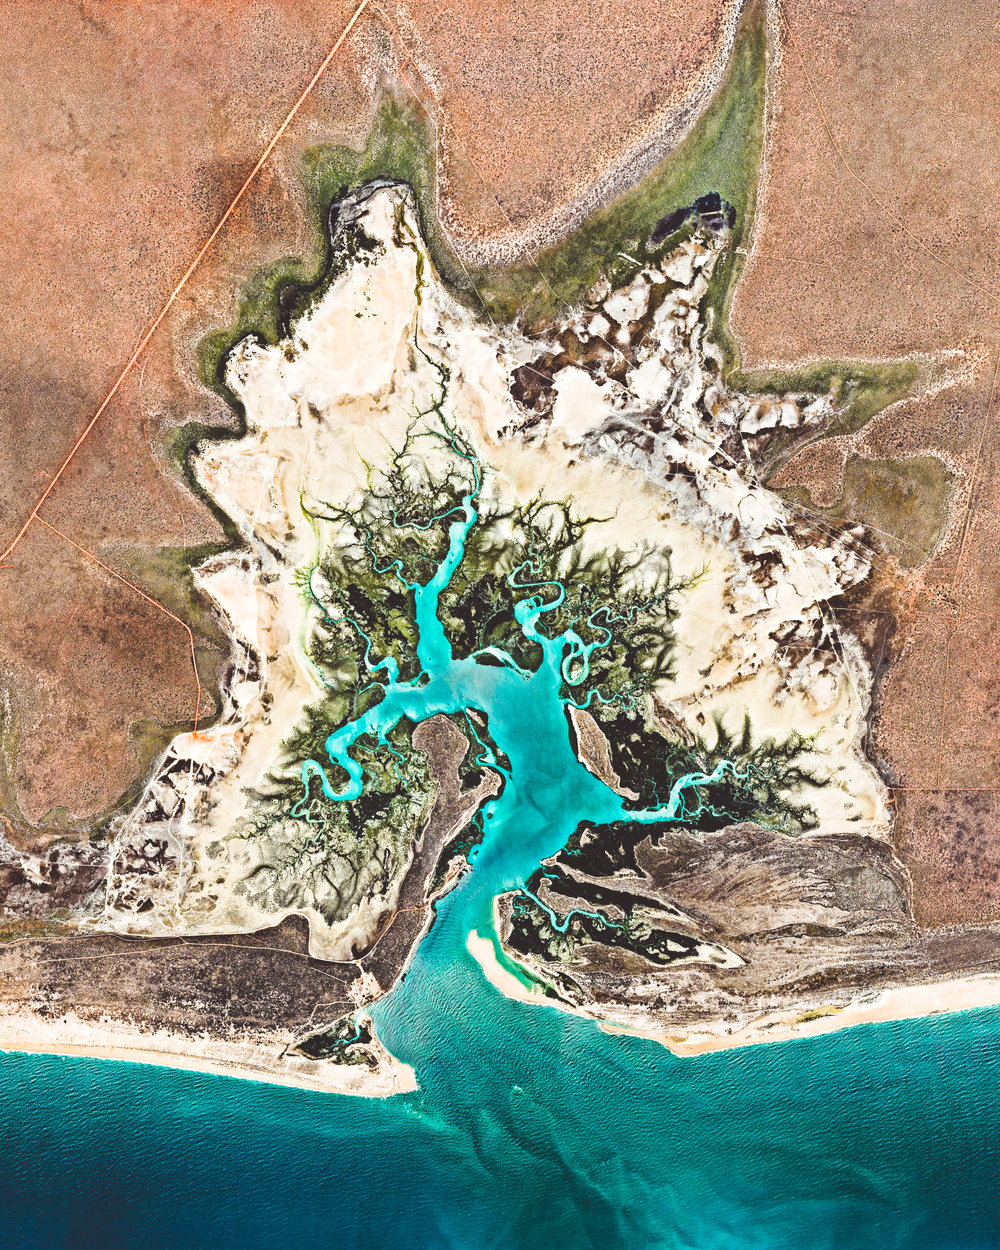 "Willie Creek is a protected tidal estuary roughly 10.5 miles (17 km) north of Broome, Western Australia. The creek's calm, nutrient-rich waters make it an ideal habitat for the Pinctada maxima oyster, which produces world-renowned pearls.  17°45'45.2""S, 122°14'14.2""E  Source imagery: Nearmap"